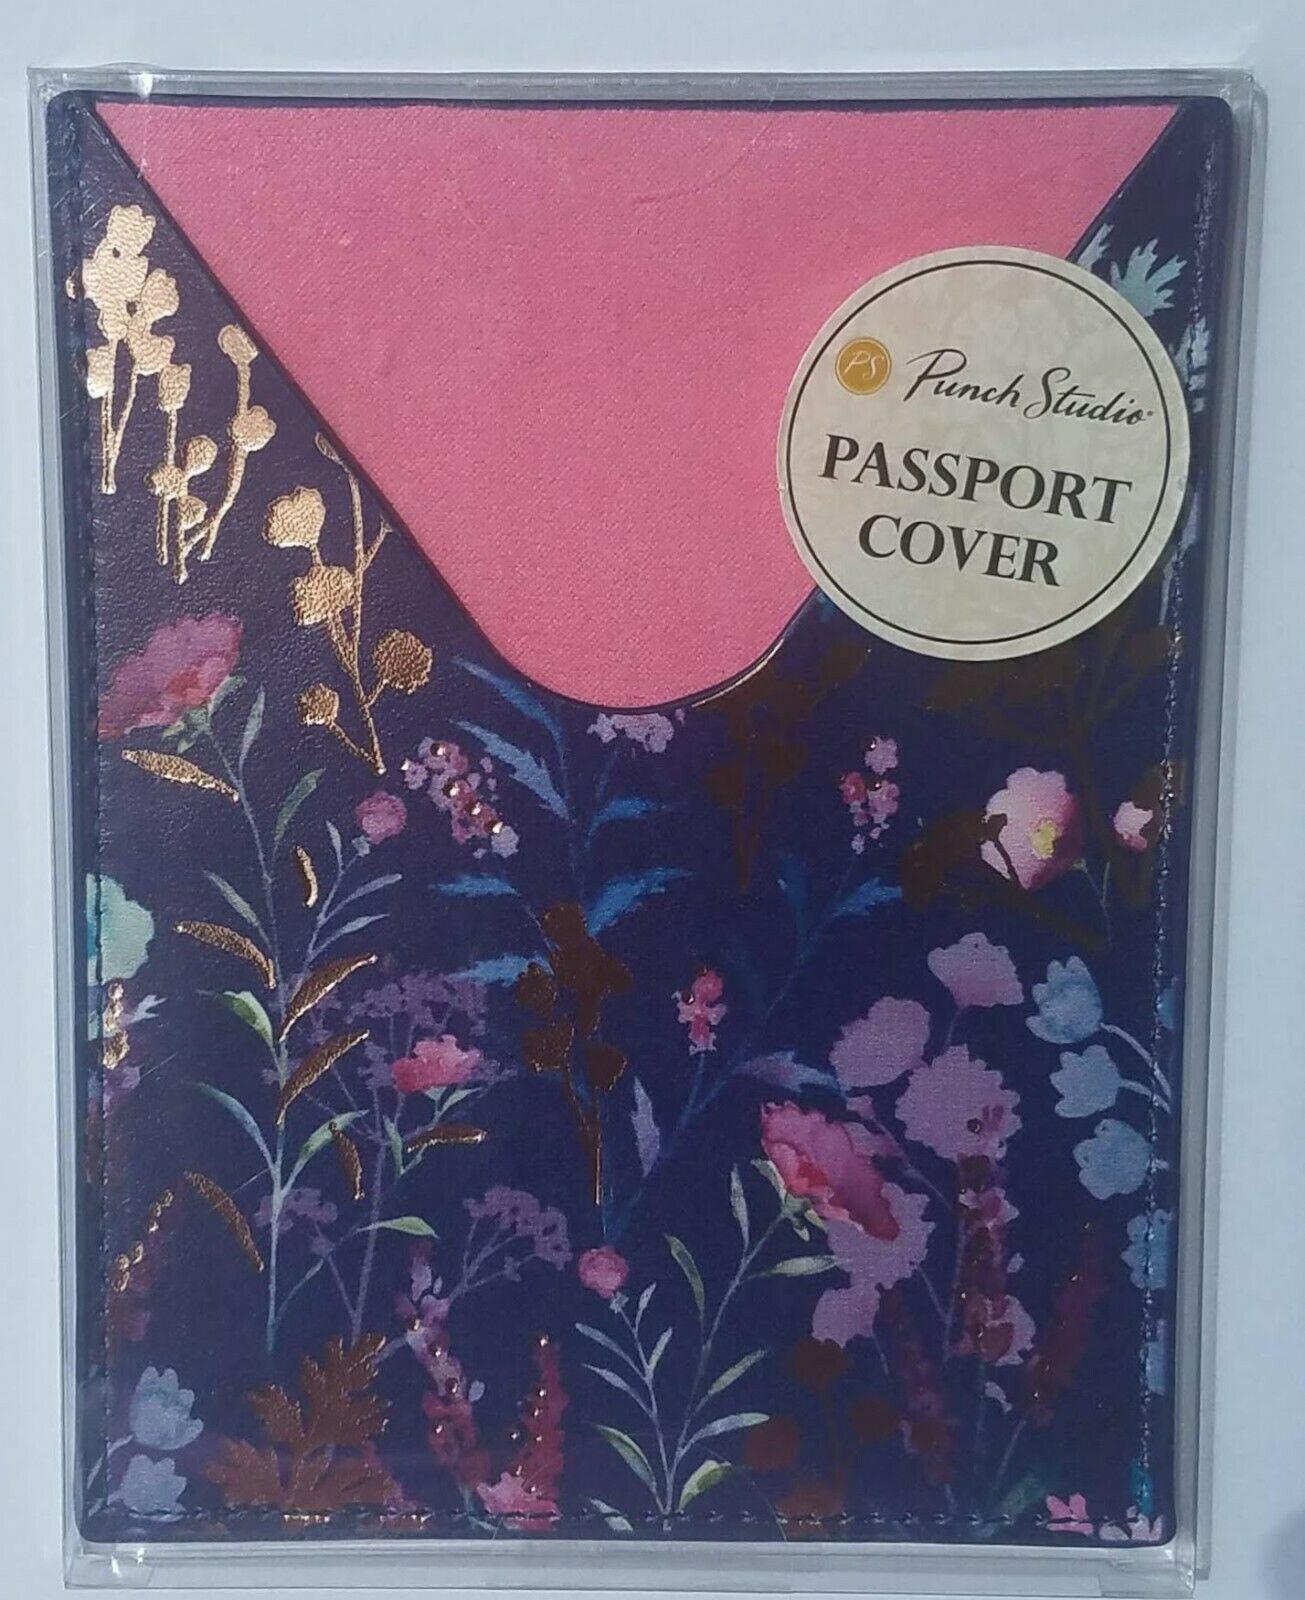 Punch Studio Travel Passport Cover Purple Wildflowers New With Tags - s l1600